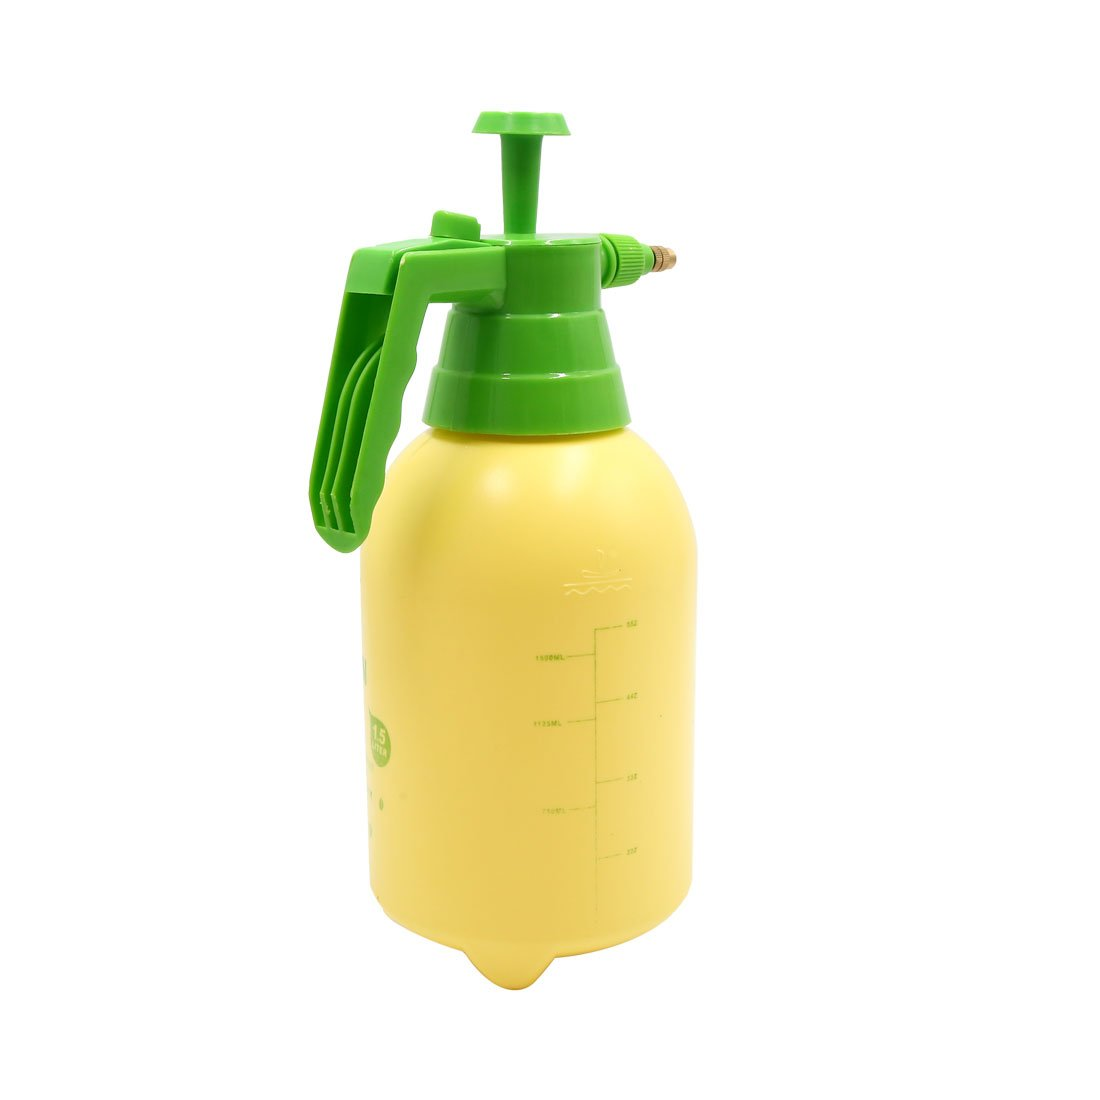 uxcell Plastic Yellow Car Trigger Spray Bottle Window Washing Cleaner Tool 1.5L by uxcell (Image #2)